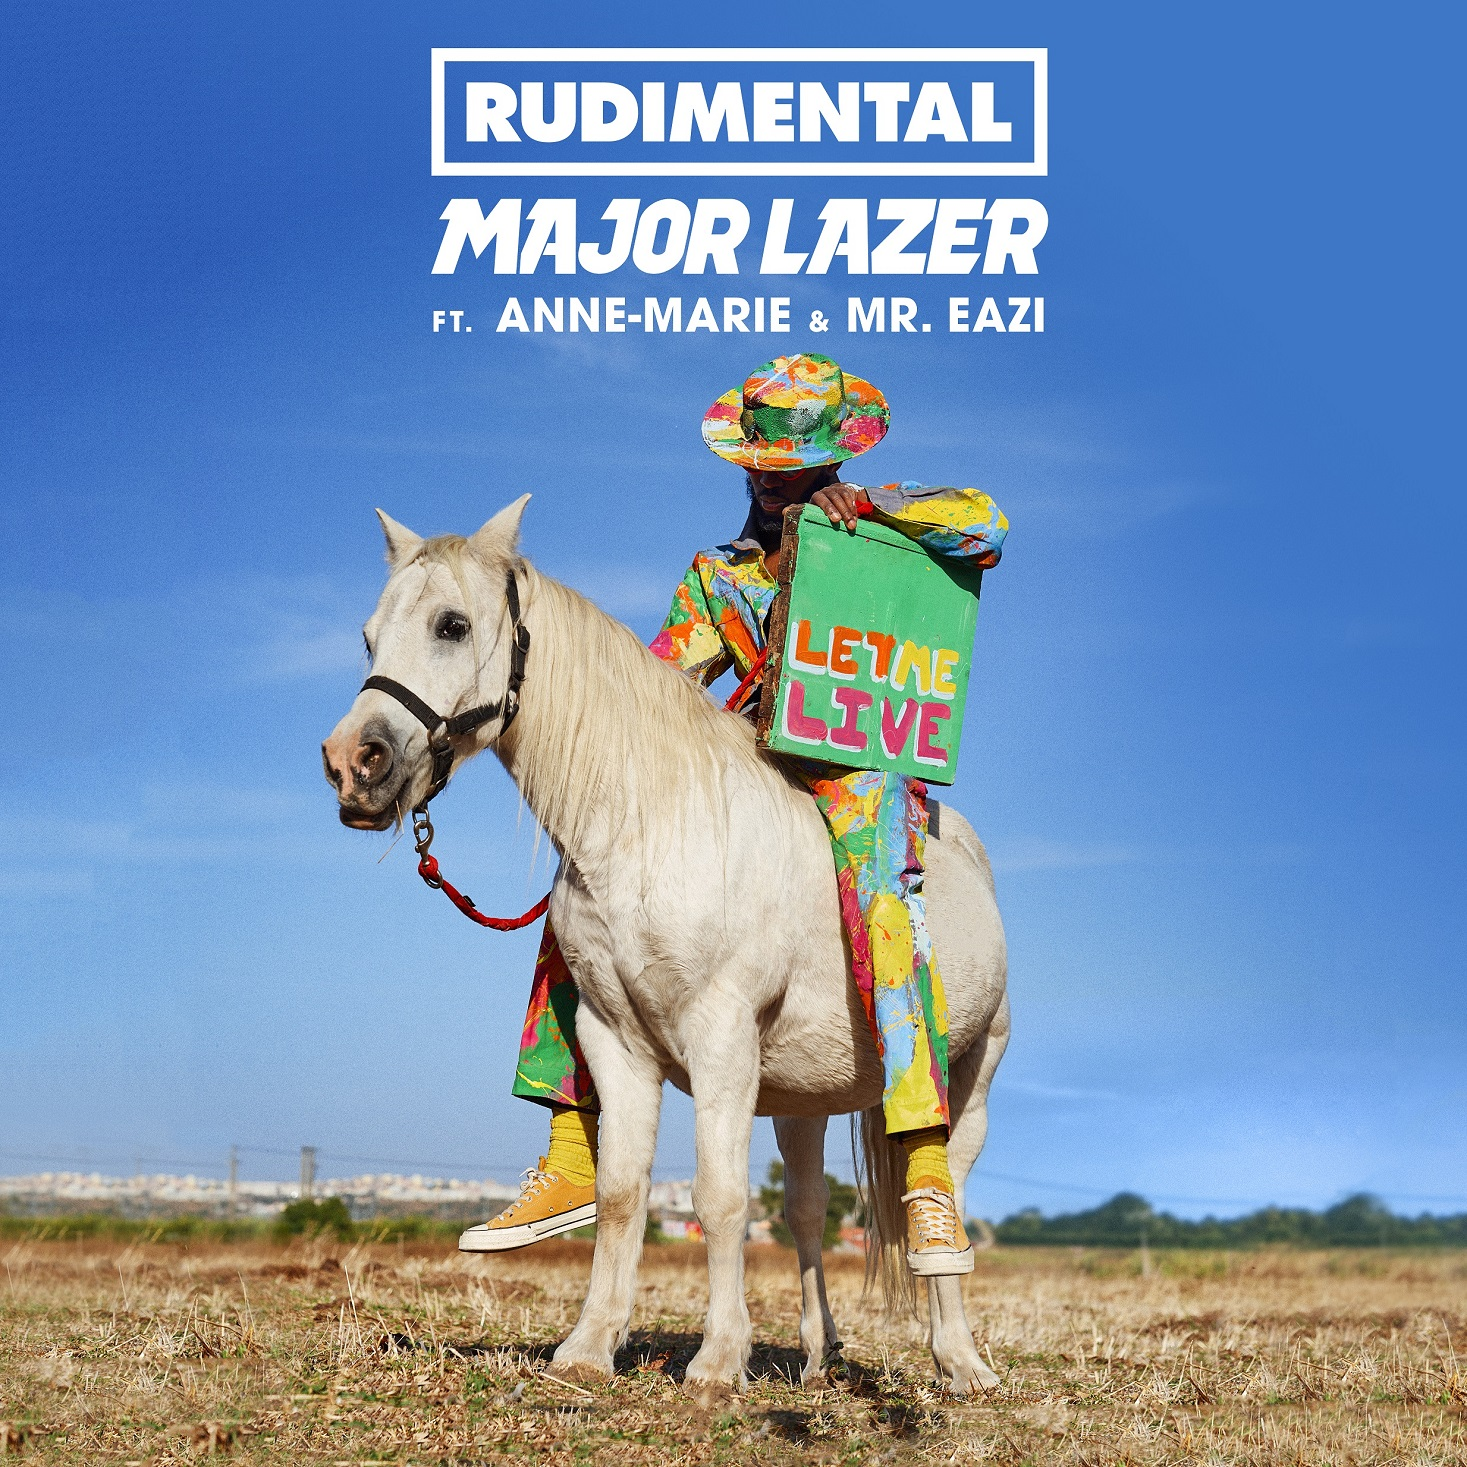 RUDIMENTAL x MAJOR LAZER